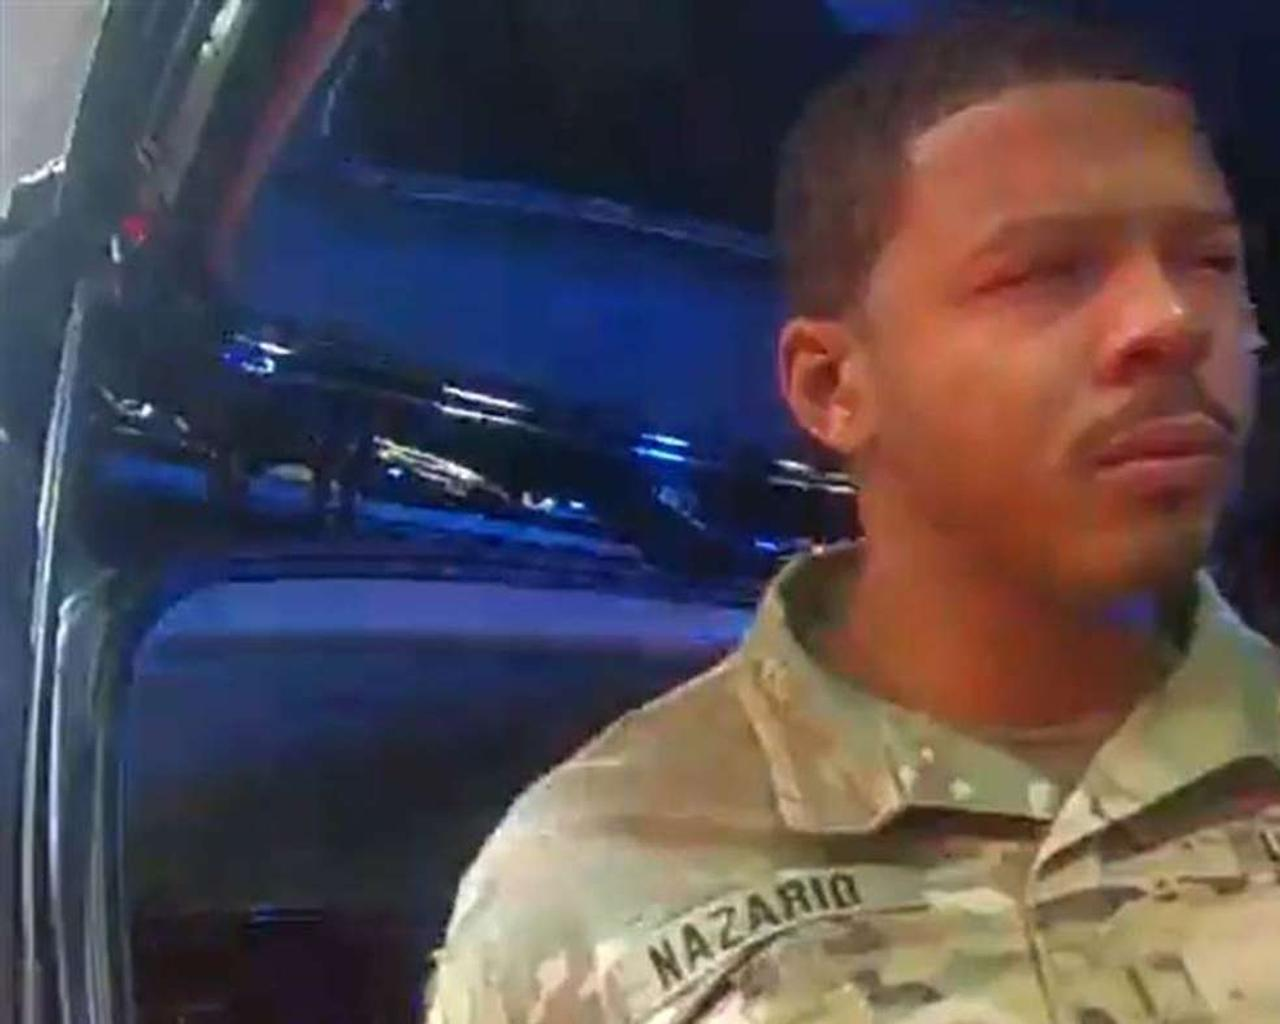 Virginia police officer fired after Black Army lieutenant sprayed pepper and handcuffed during a parking lot